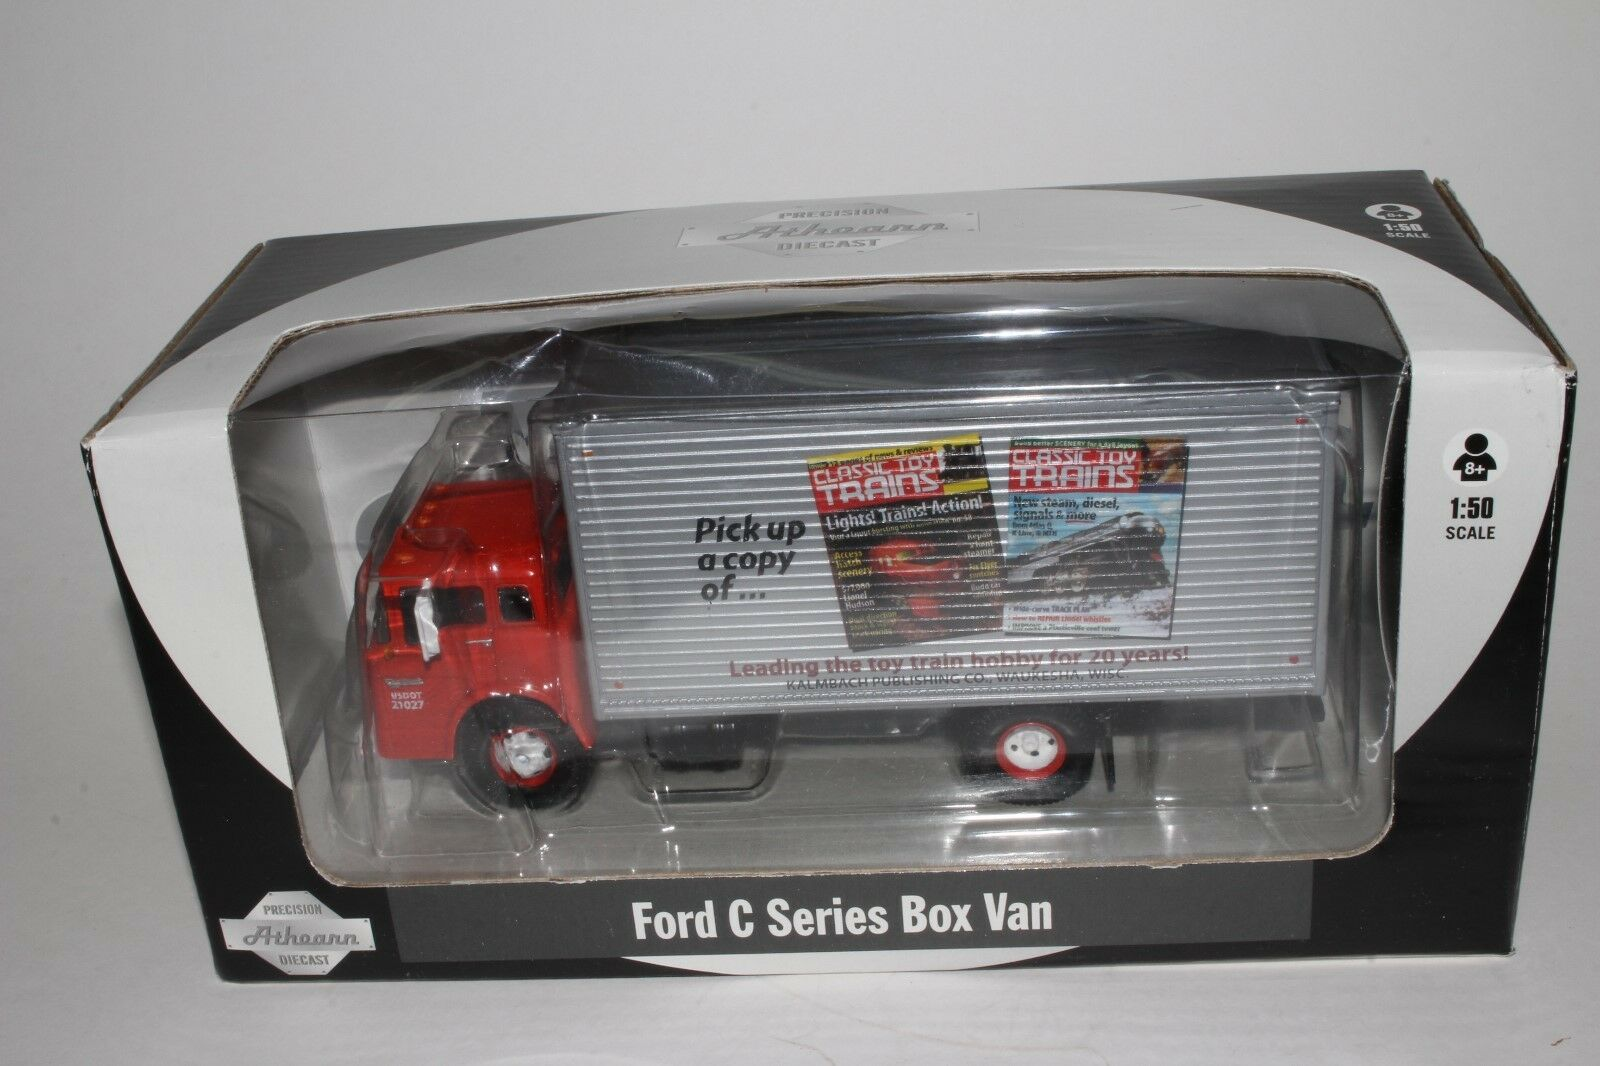 Athearn FORD Série C Box Van Camion, Classic Toy trains, O scale 1 50,  2